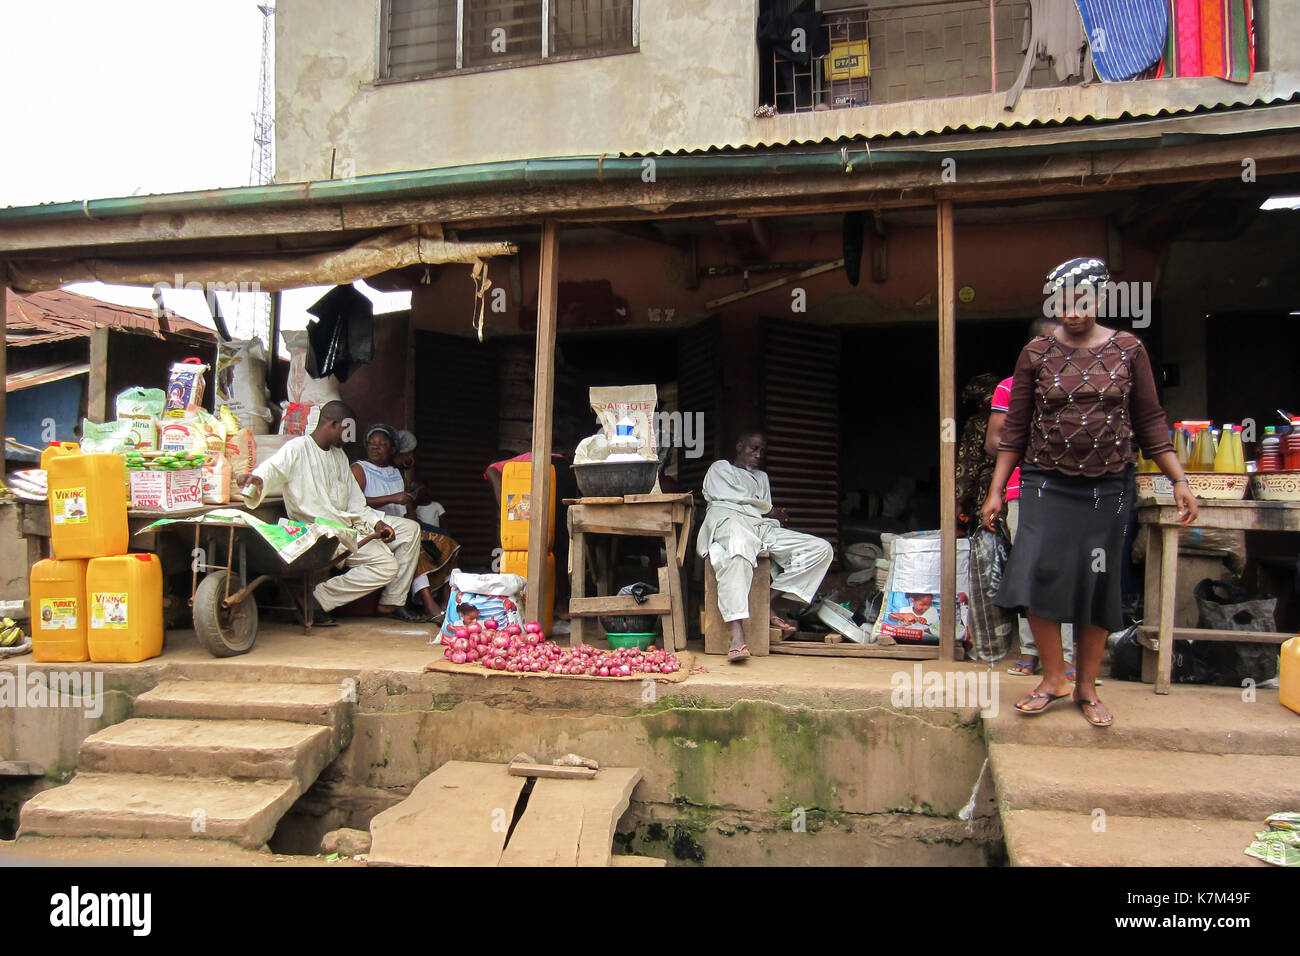 People selling different goods in the street in the city of Lagos, the largest city in Nigeria and the African conti - Stock Image